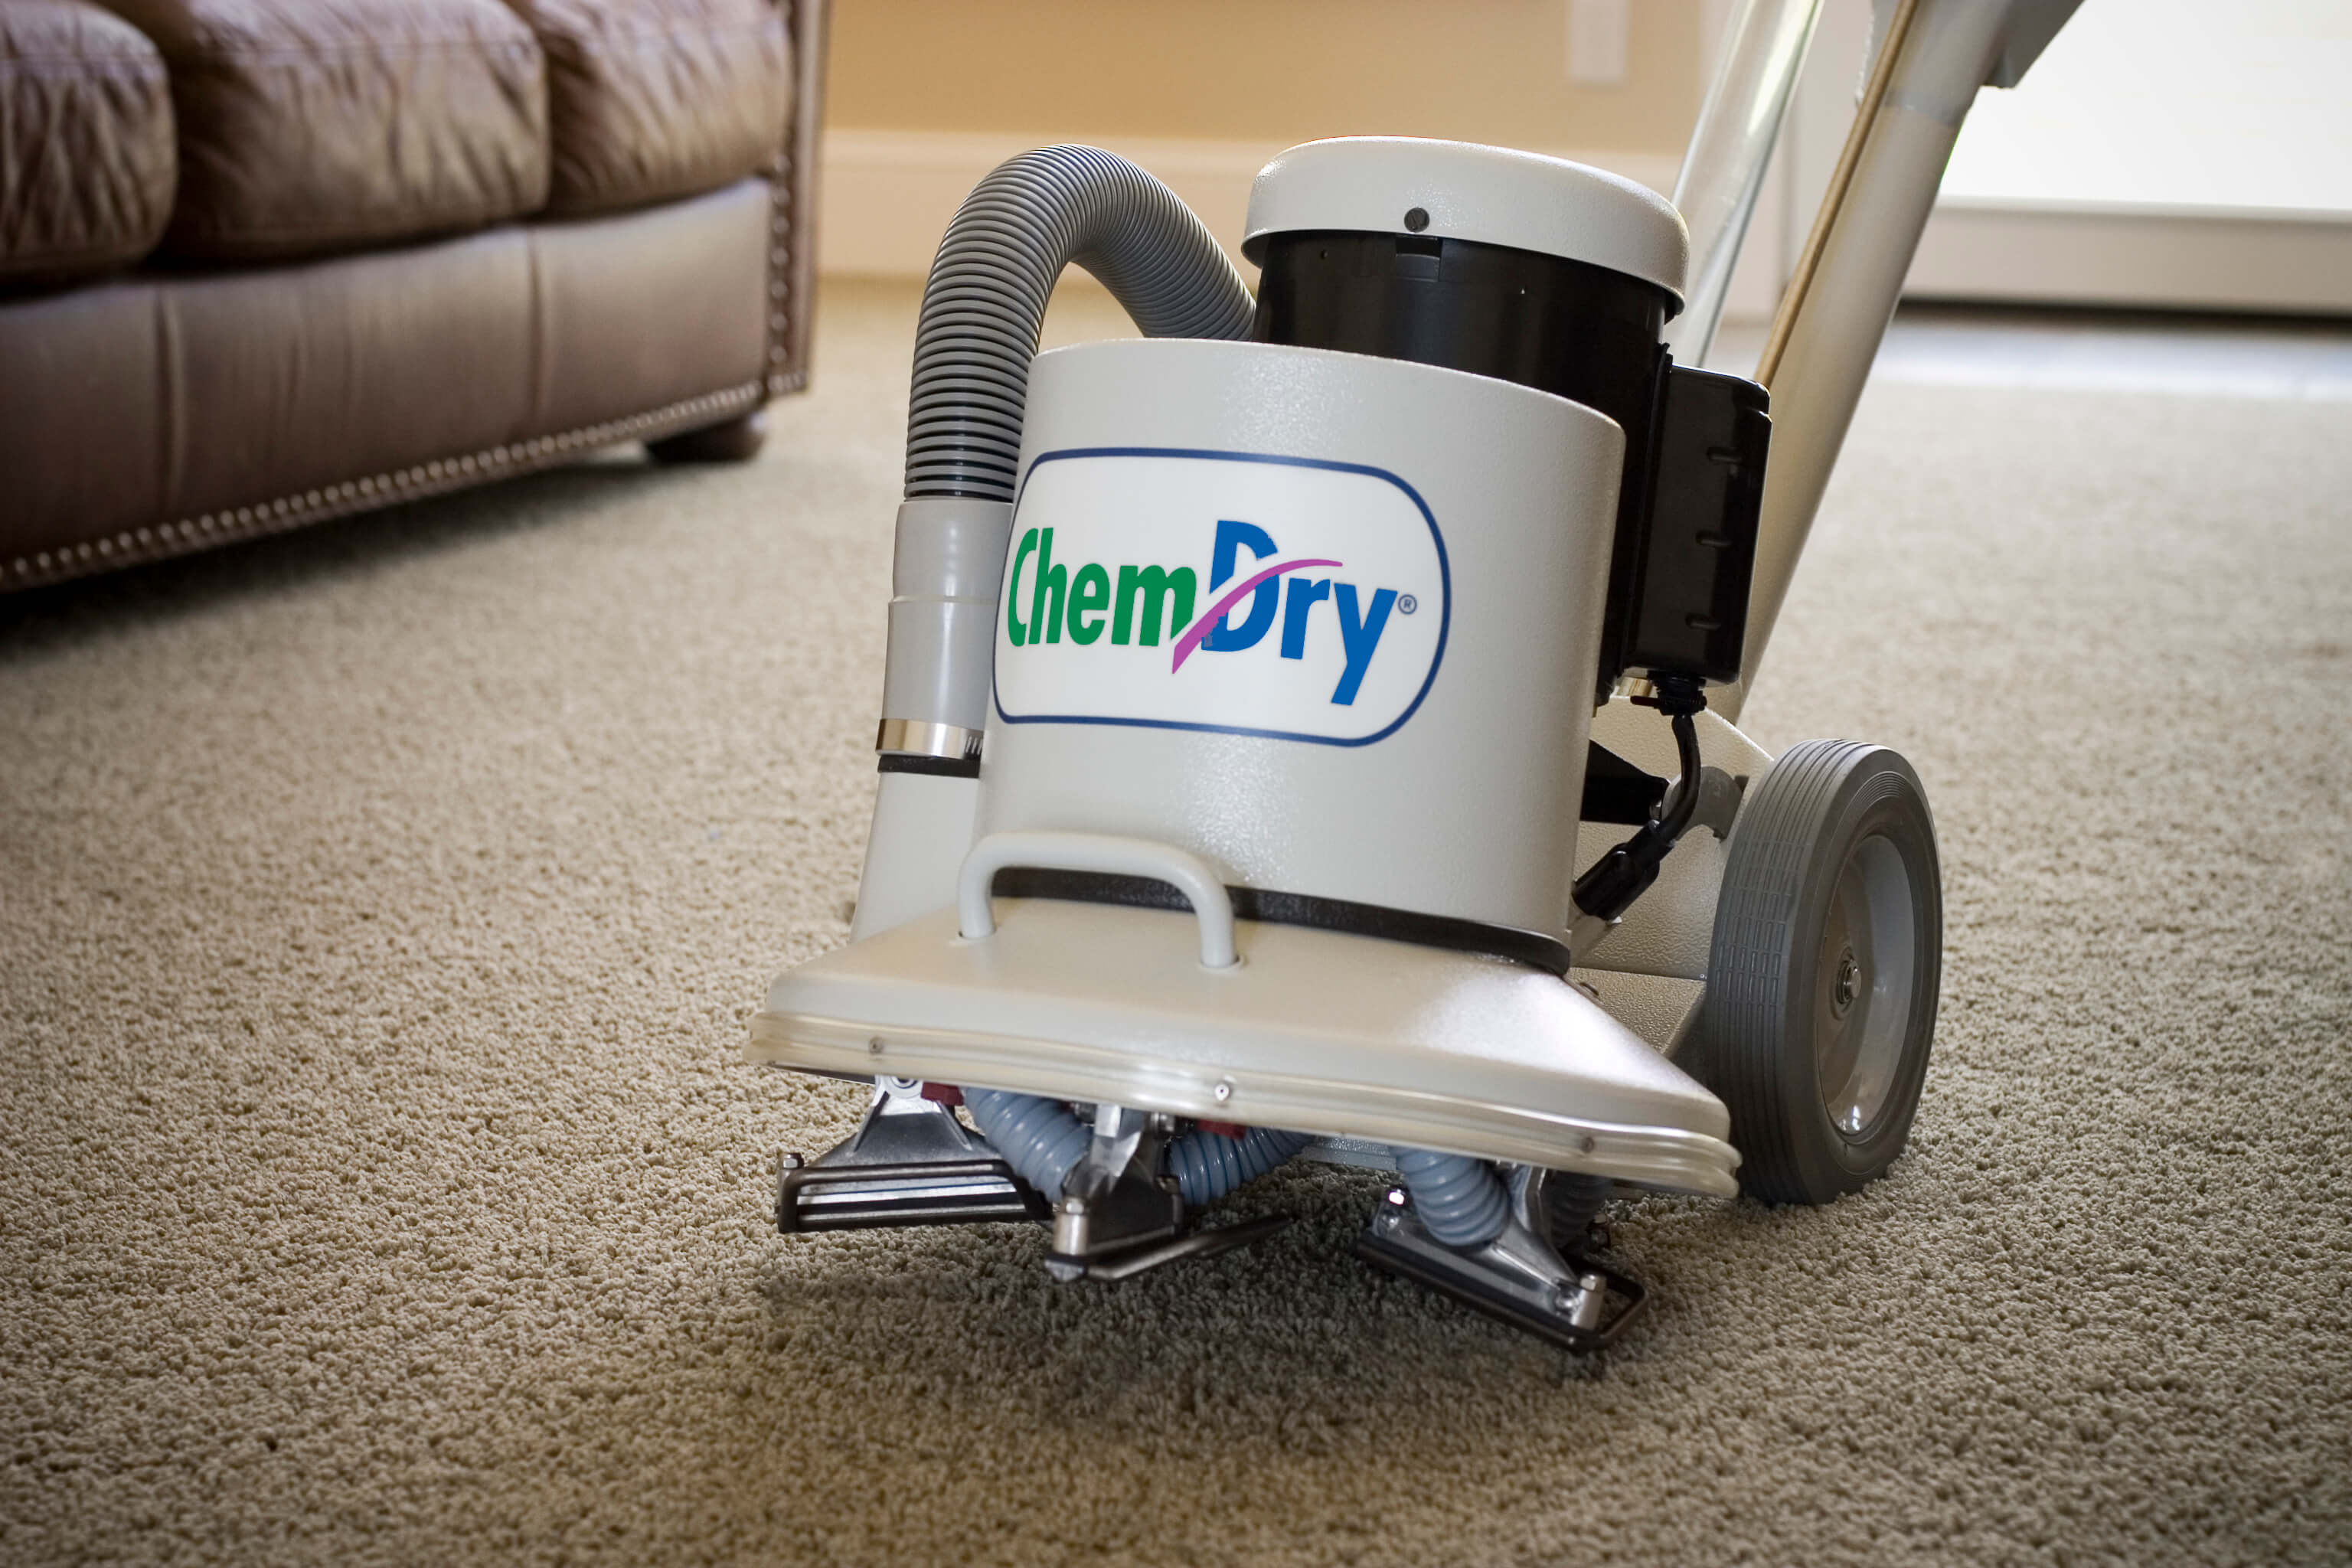 chemdry carpet cleaning greeley